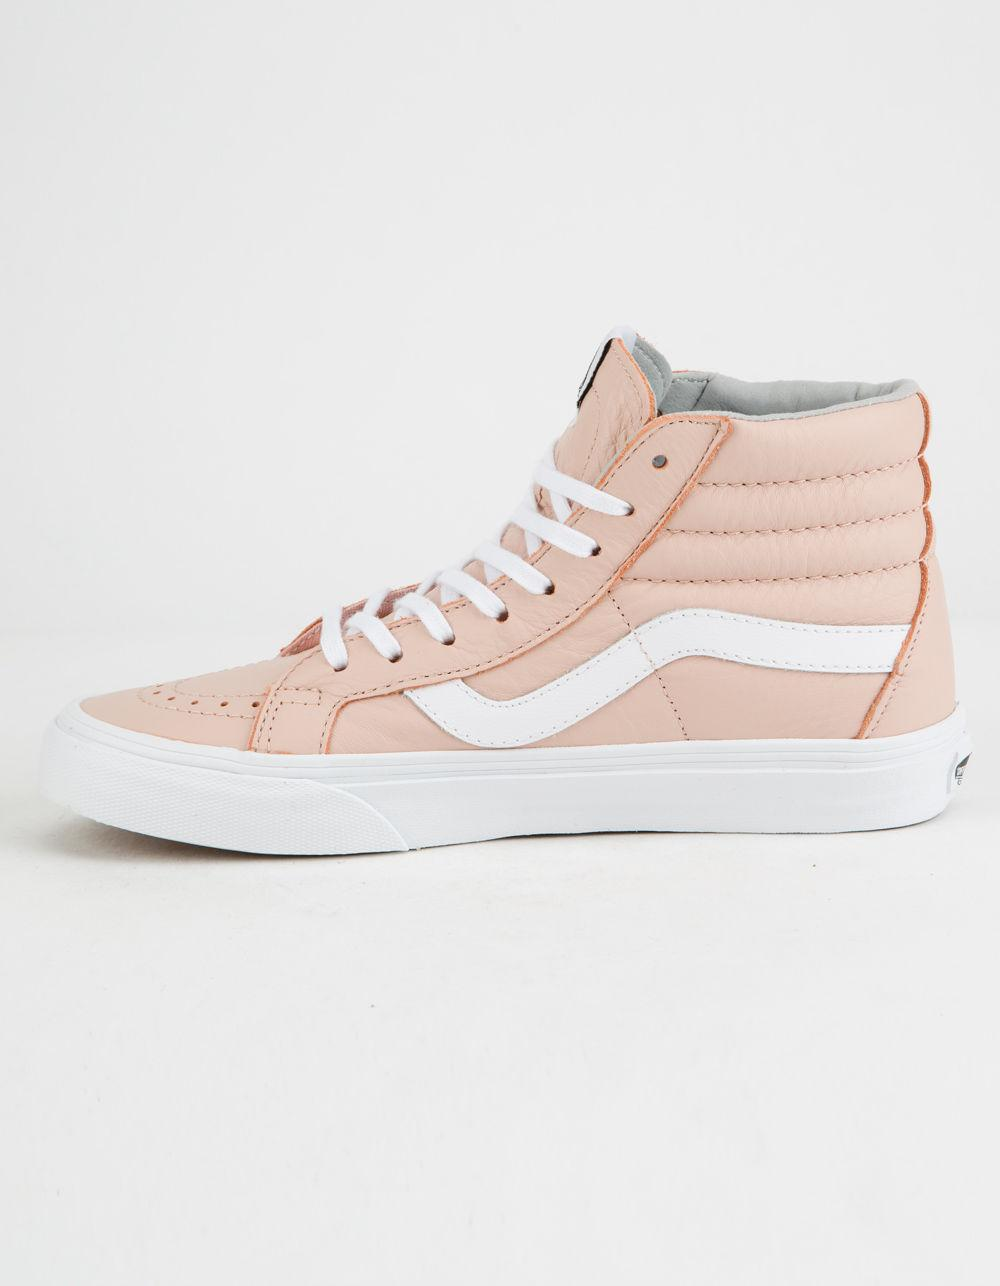 a5ef50cc661bcd Lyst - Vans Sk8-hi Reissue Leather Oxford   Evening Sand Womens Shoes